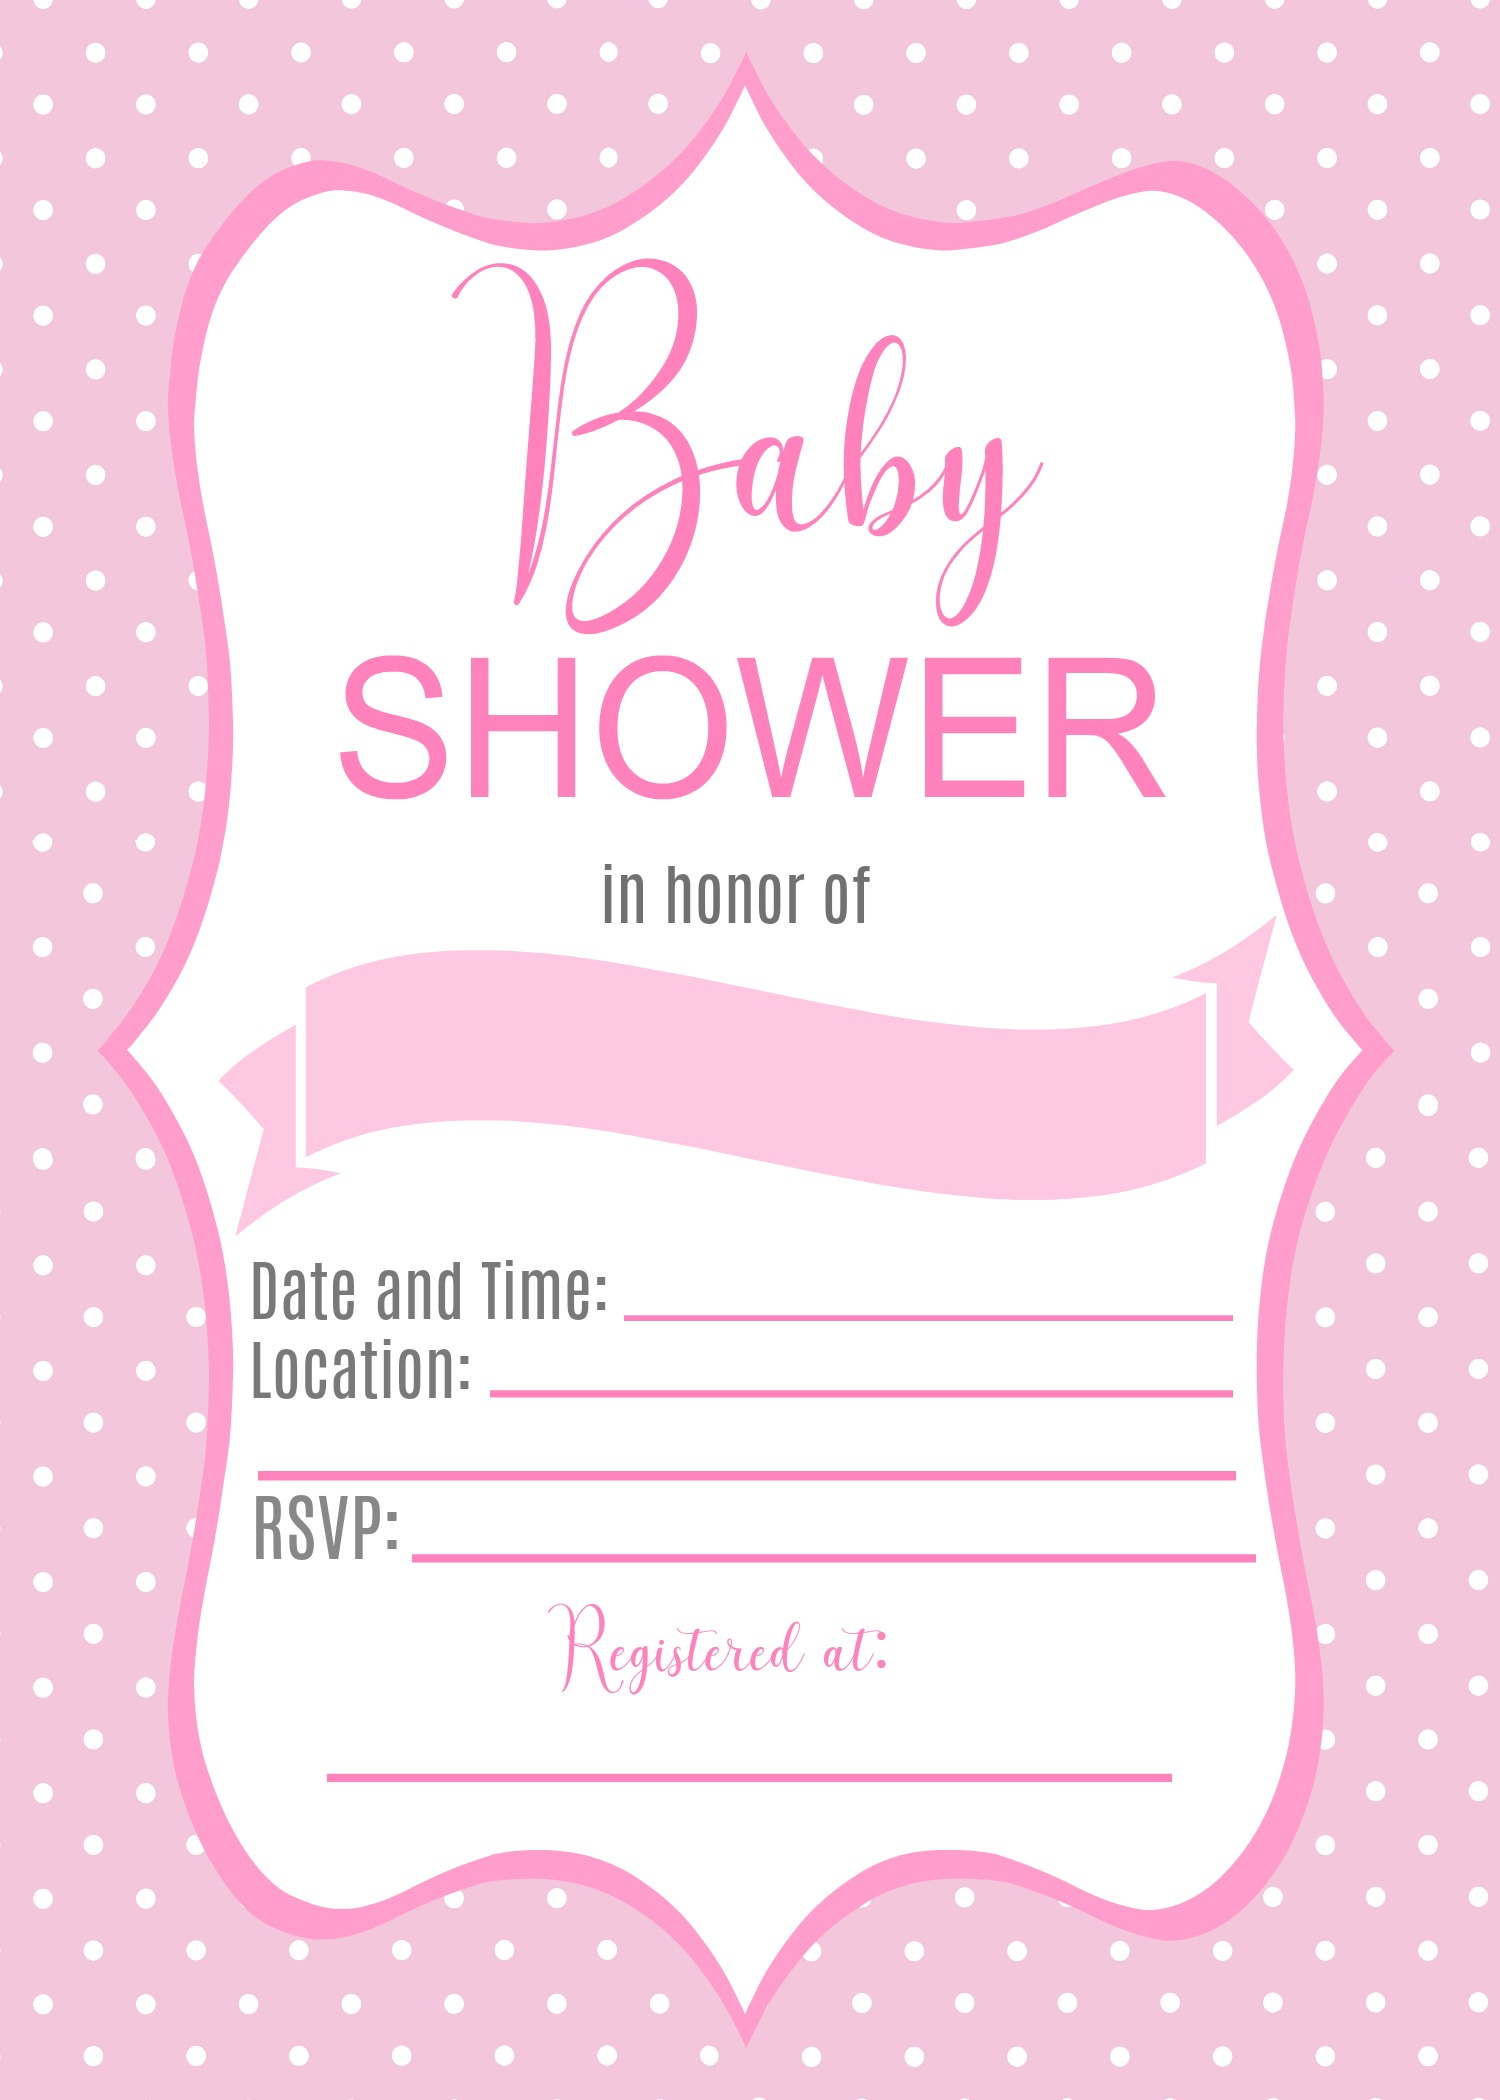 Baby Girl Shower Invitation, Fill-in - Thrifty Printables